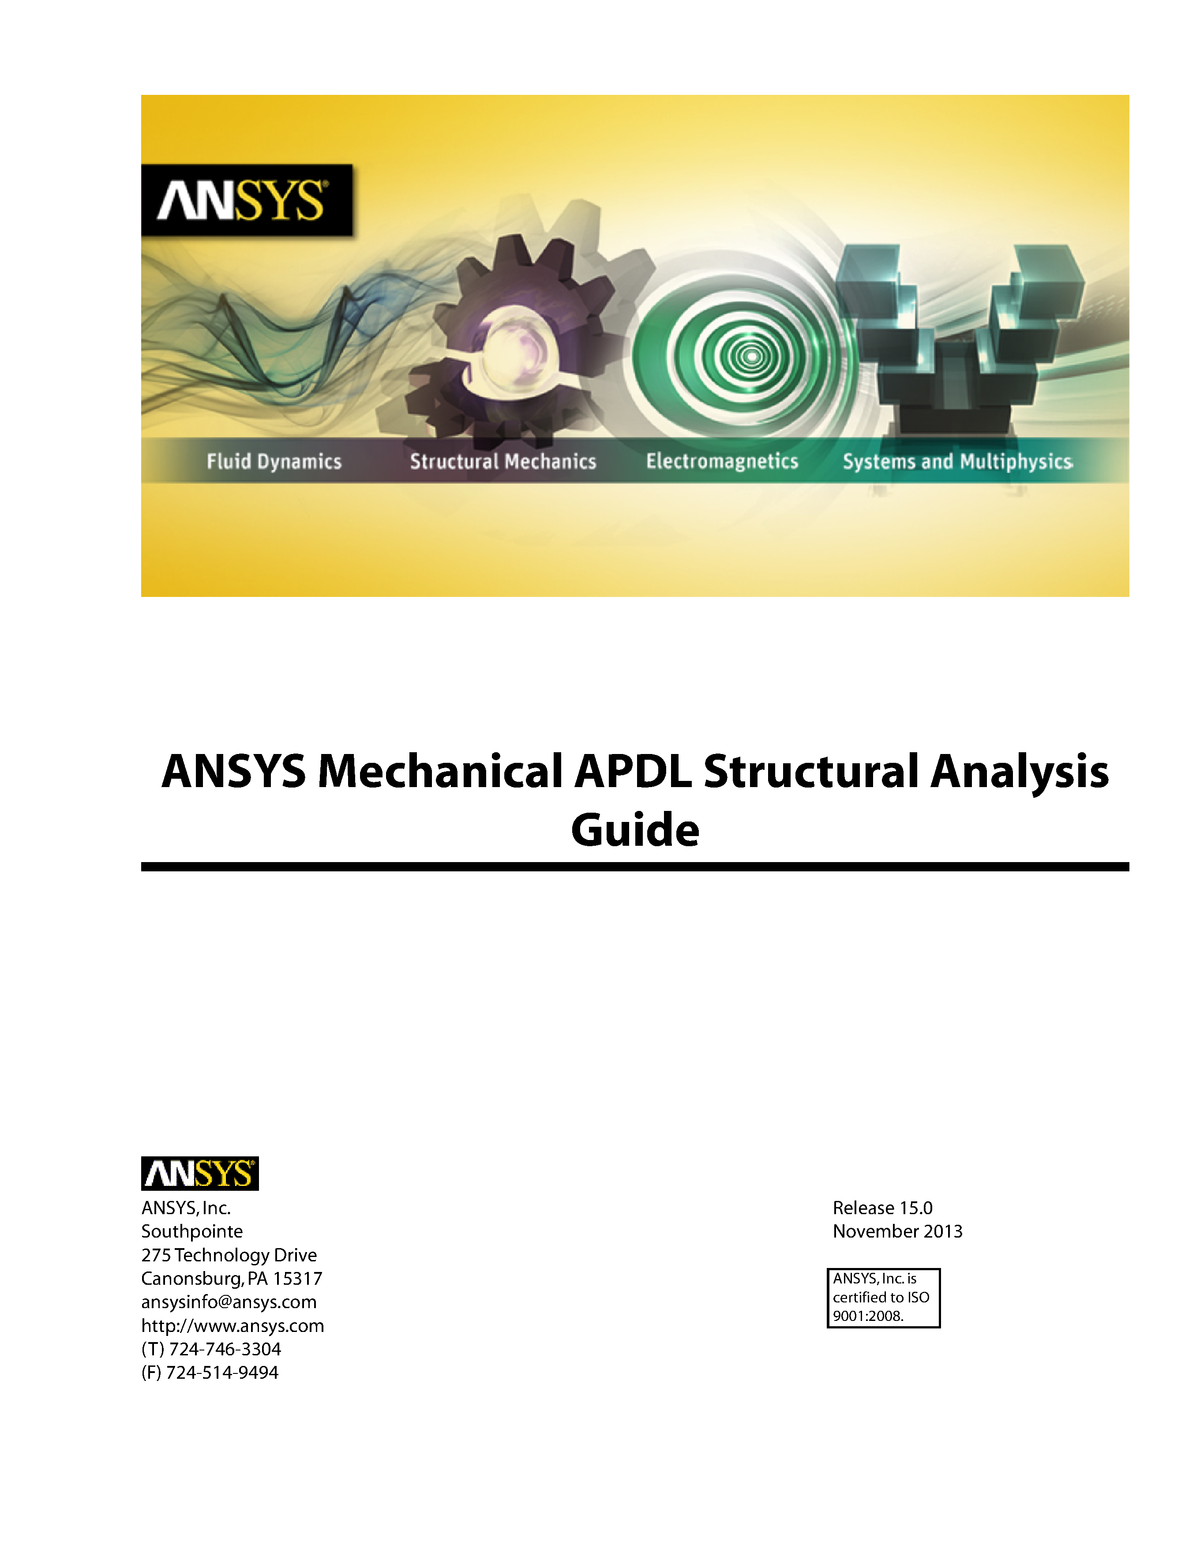 2- Ansys Mechanical APDL Structural Analysis Guide - MECH 918